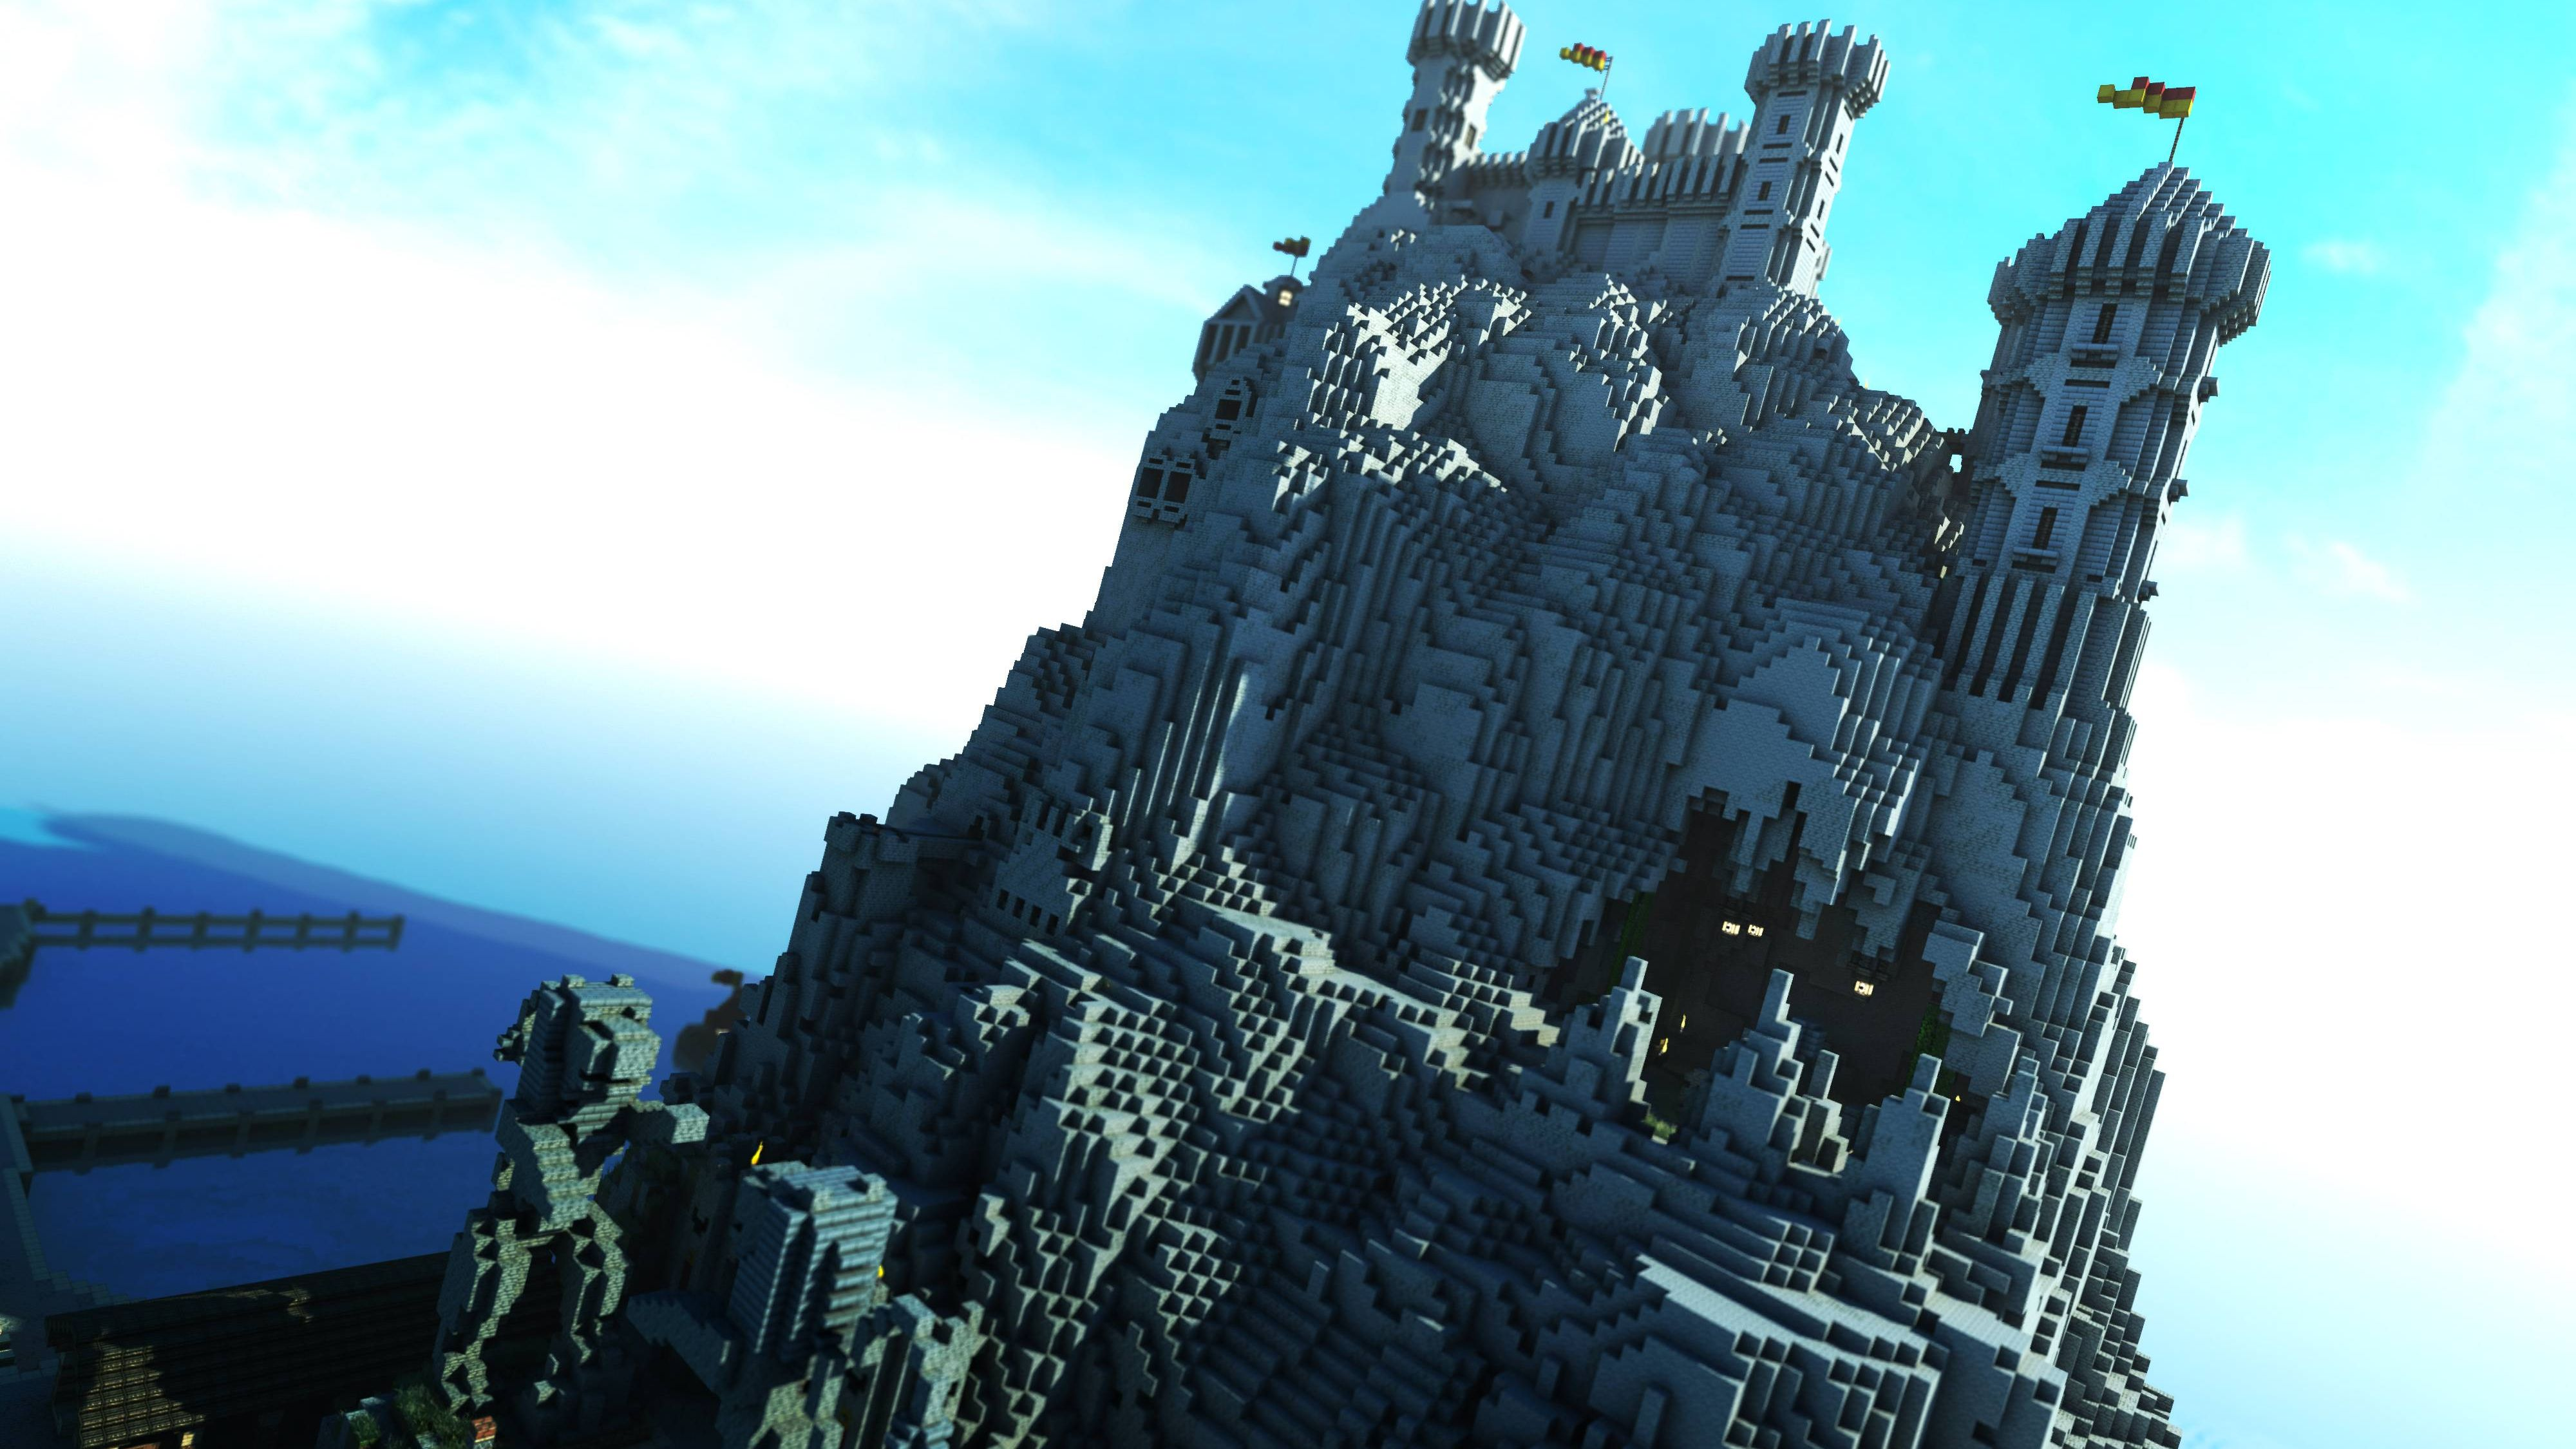 64 4k Ultra Hd Minecraft Wallpapers Background Images Wallpaper